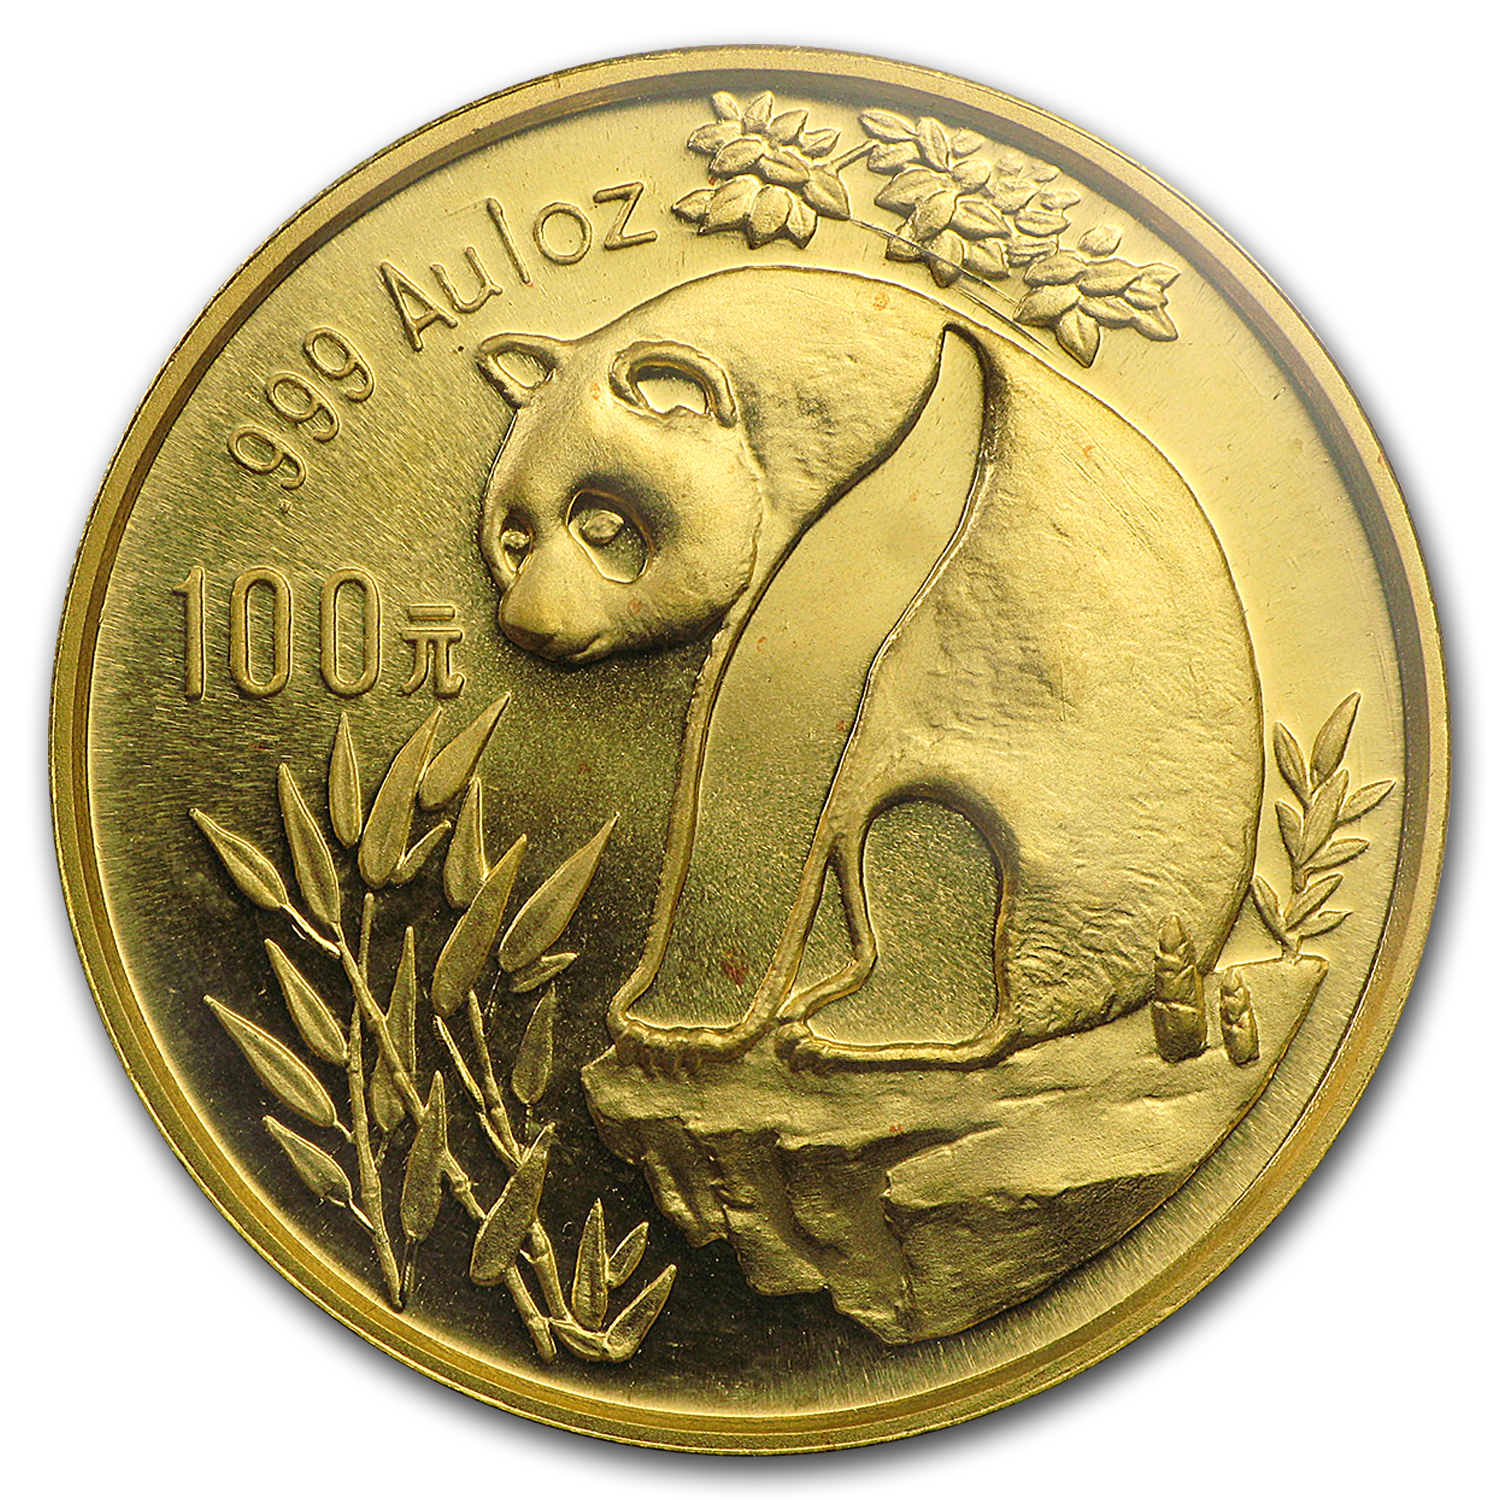 1993 China 1 oz Gold Panda Large Date BU (Sealed)